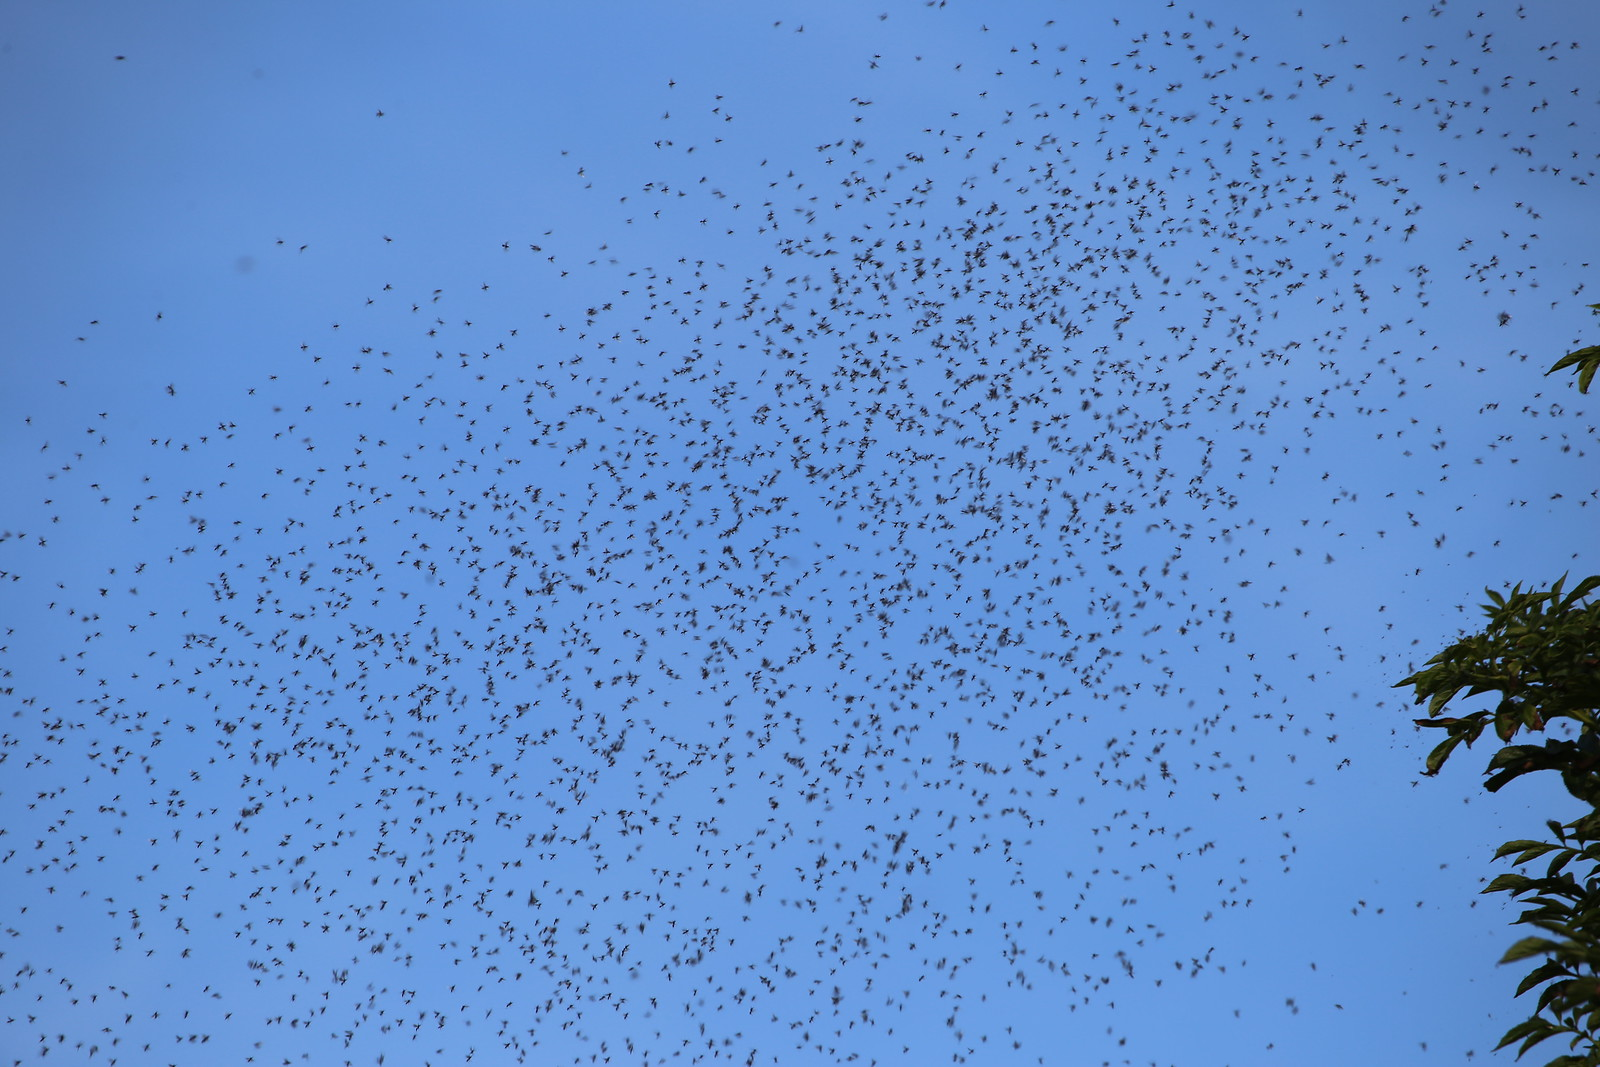 Swarm of flying ants - Cuckmere Haven